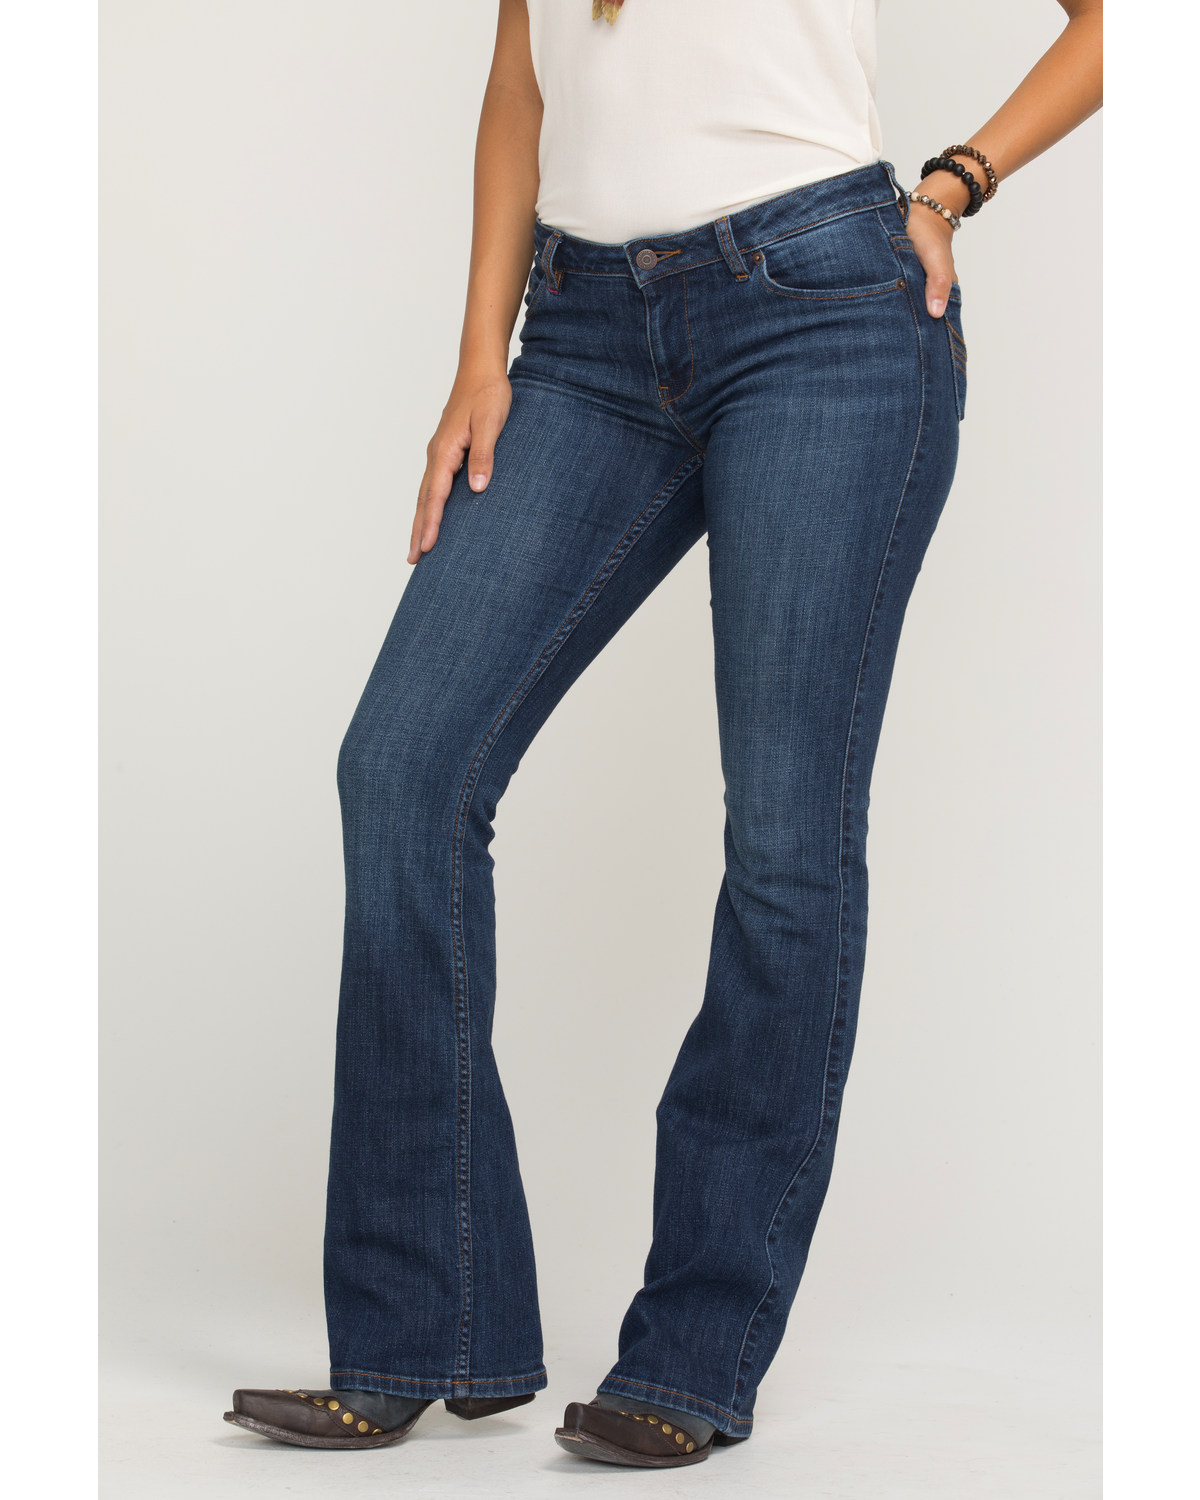 cad3d1a4 Zoomed Image Idyllwind Women's The Rebel Bootcut Jeans, Blue, ...